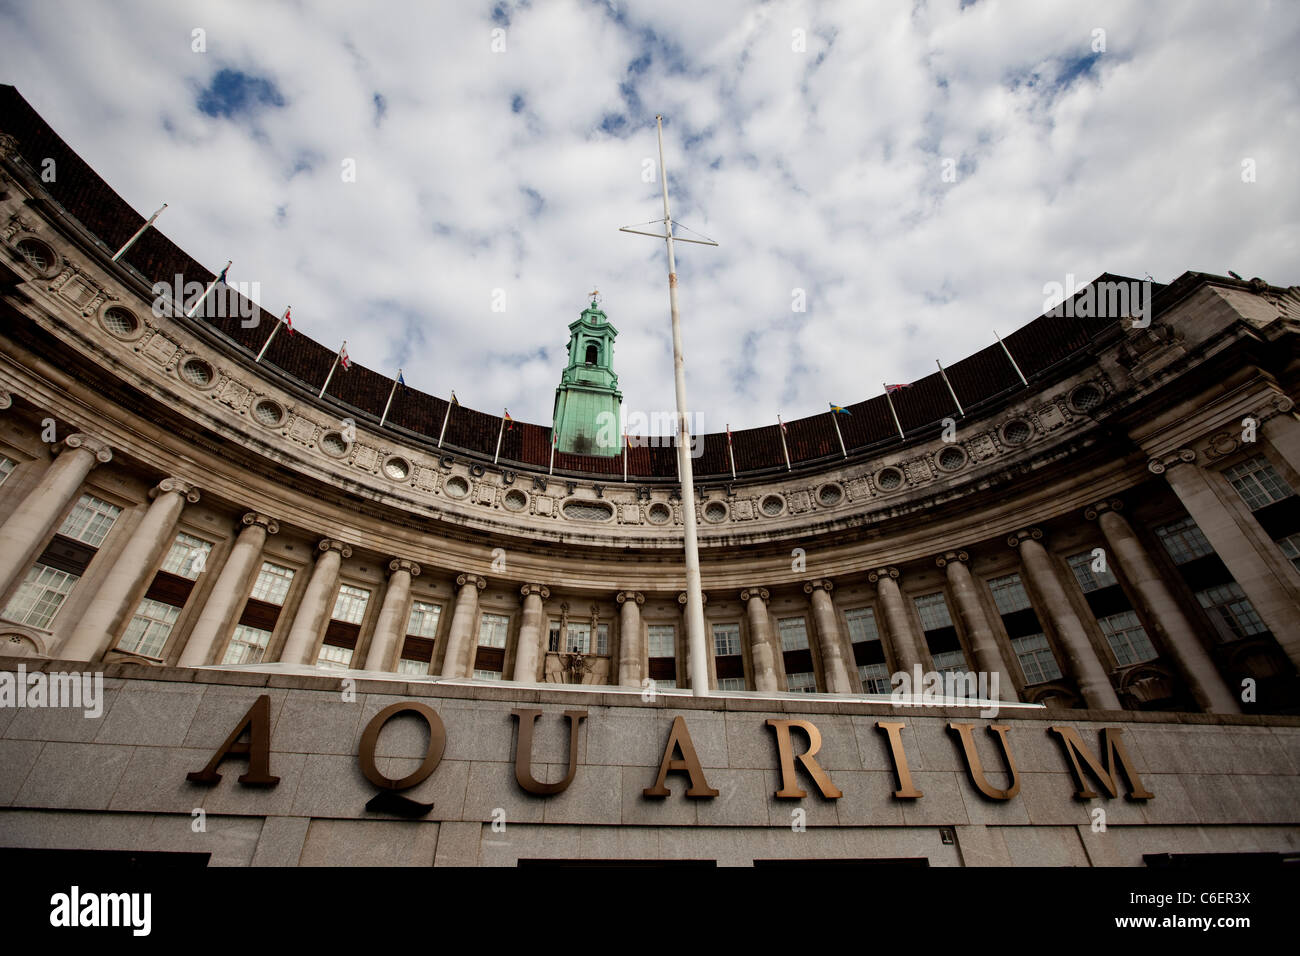 An exterior view of the London Aquarium and London Film Museum near Westminster Bridge. - Stock Image